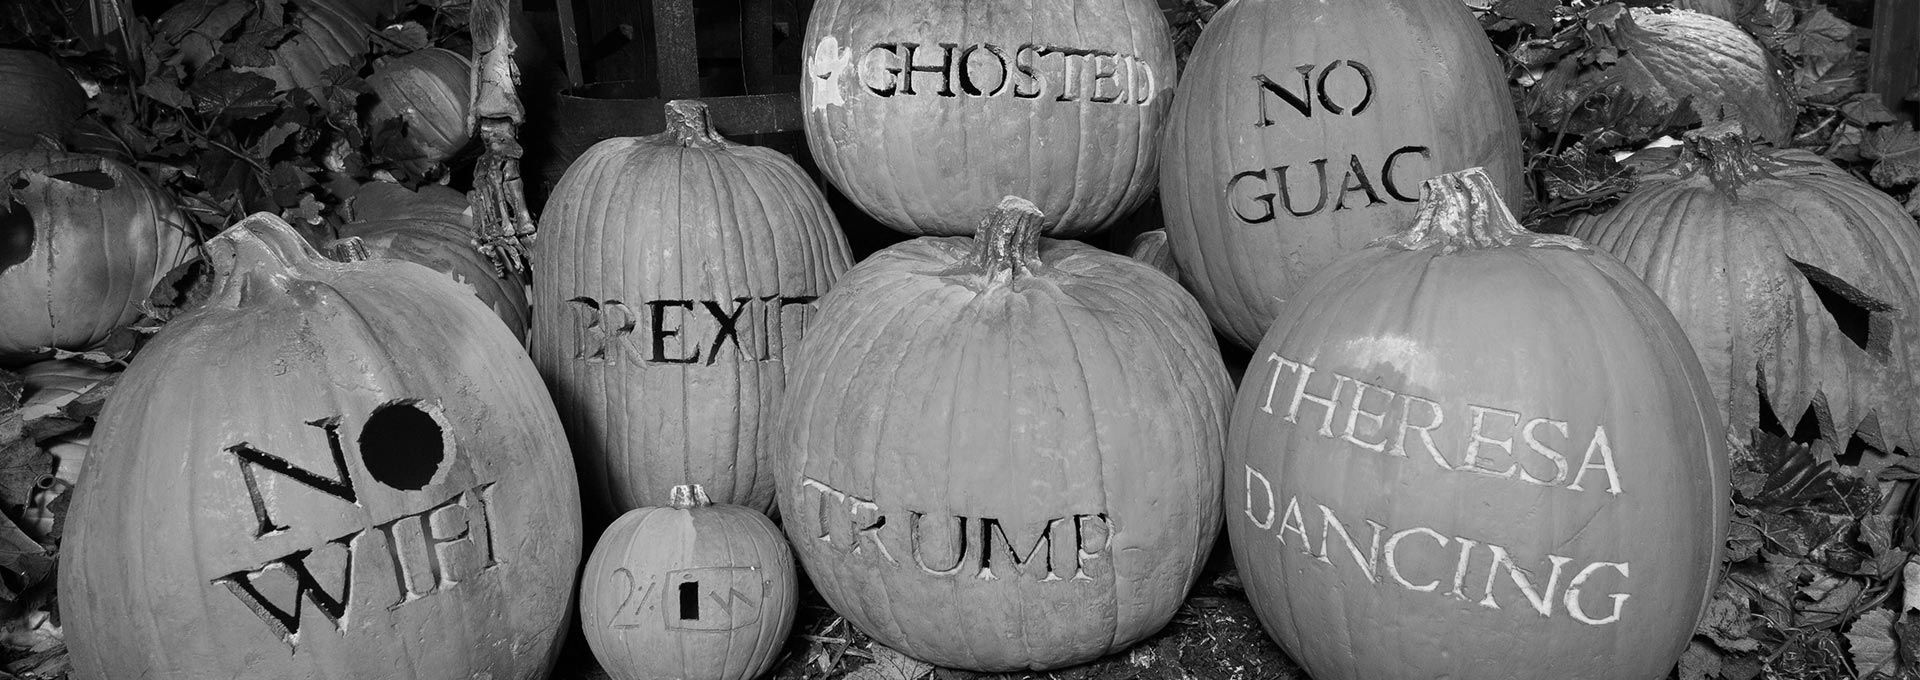 Carved pumpkins with phrases